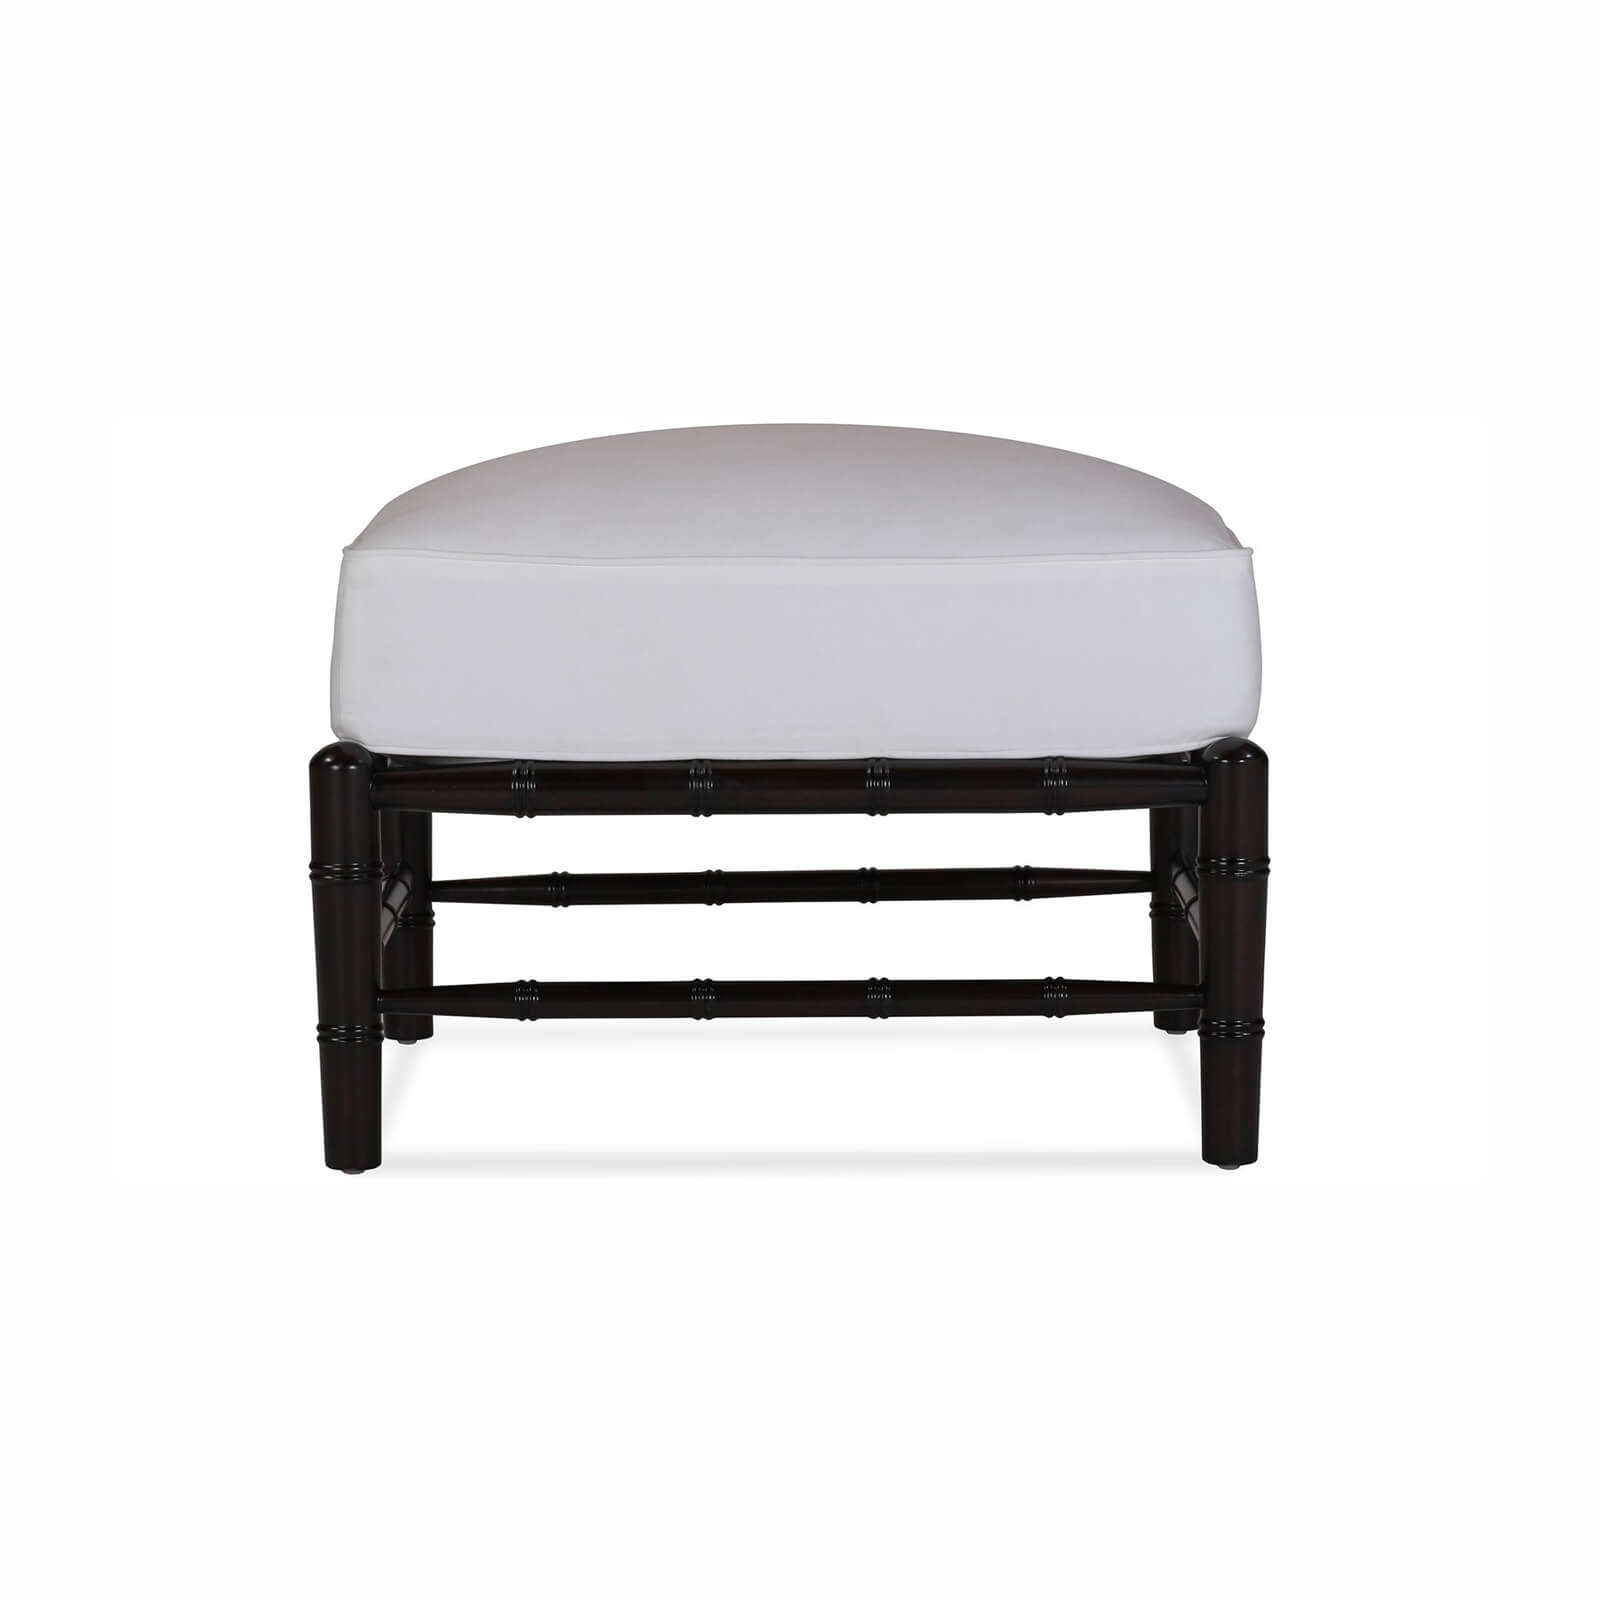 CAPE COLONY OTTOMAN 03 - STUART MEMBERY HOME COLLECTION